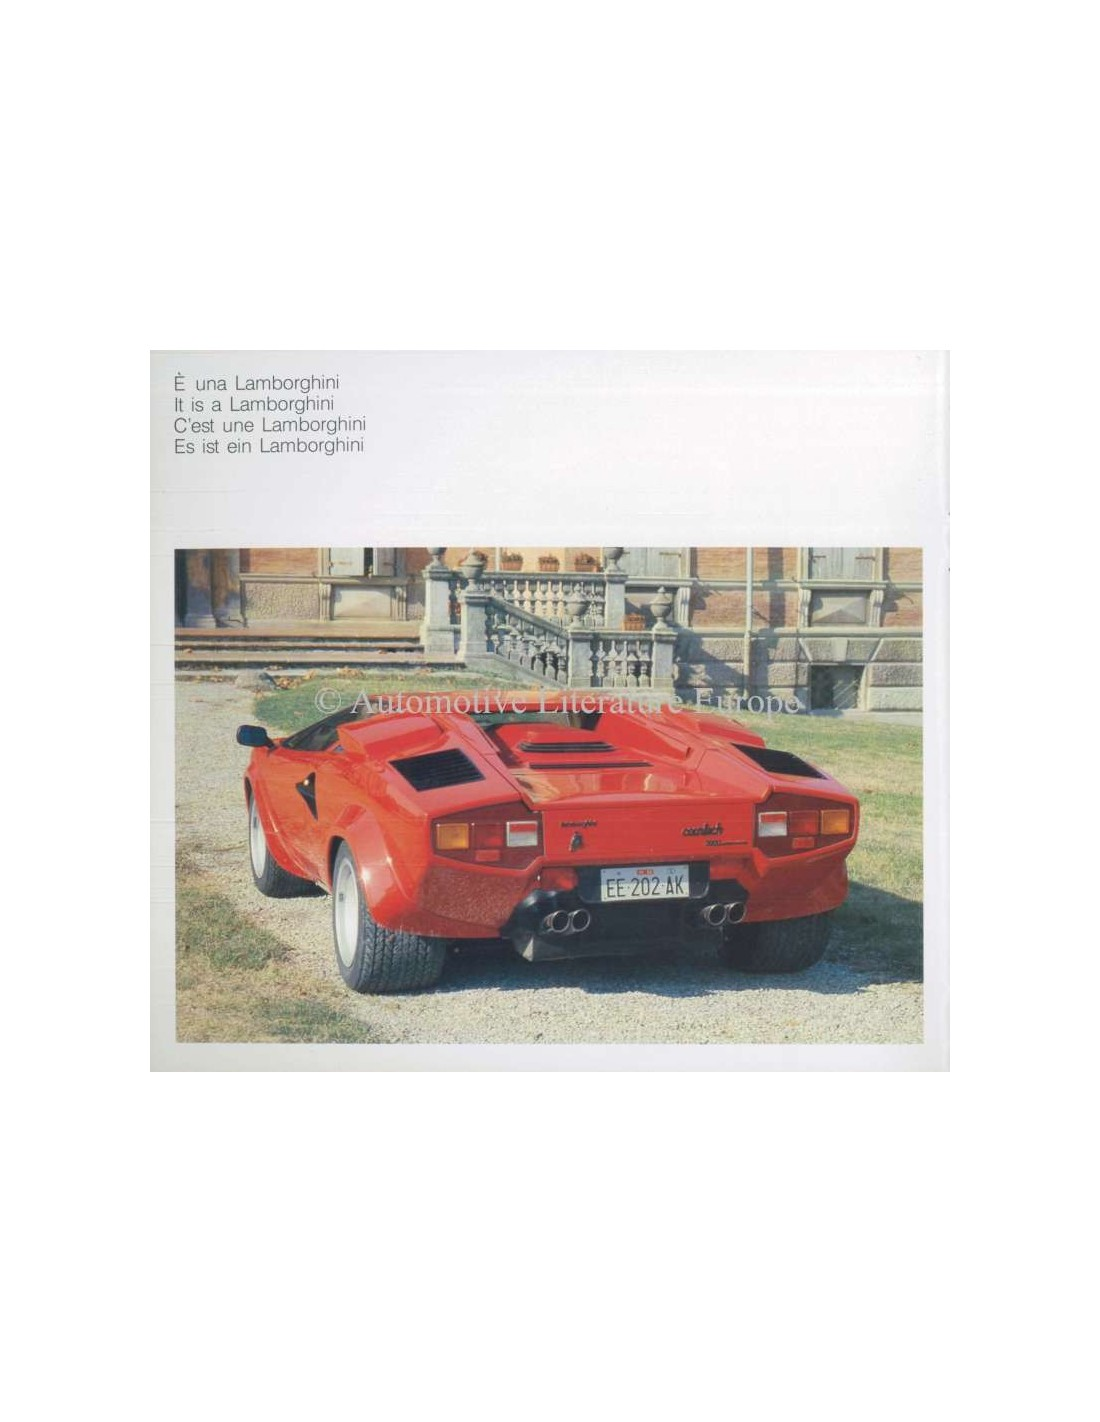 https://www.autolit.eu/10674-thickbox_default/1985-lamborghini-countach-lp5000-quattrovalvole-brochure.jpg